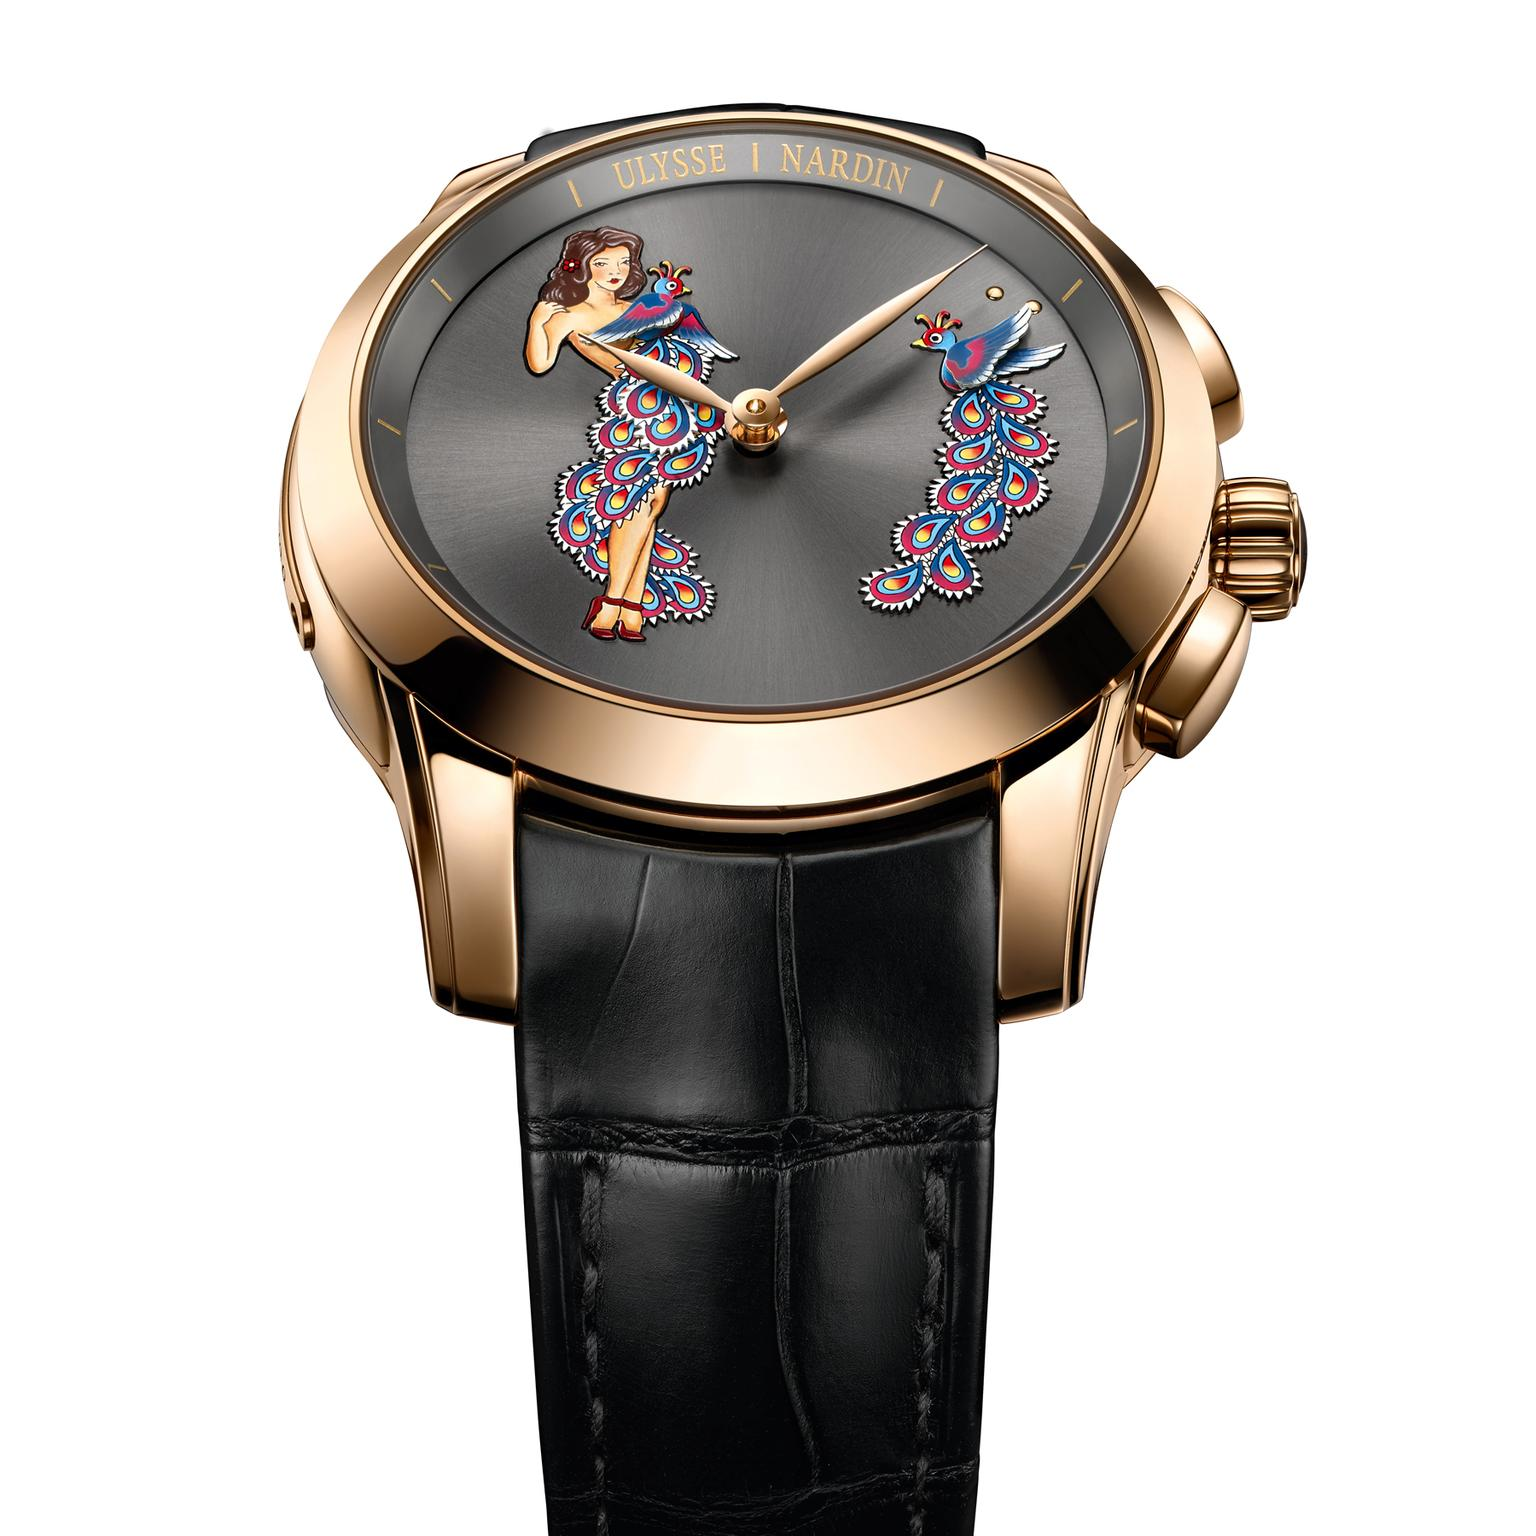 Ulysse Nardin Hourstriker Pin-Up watch